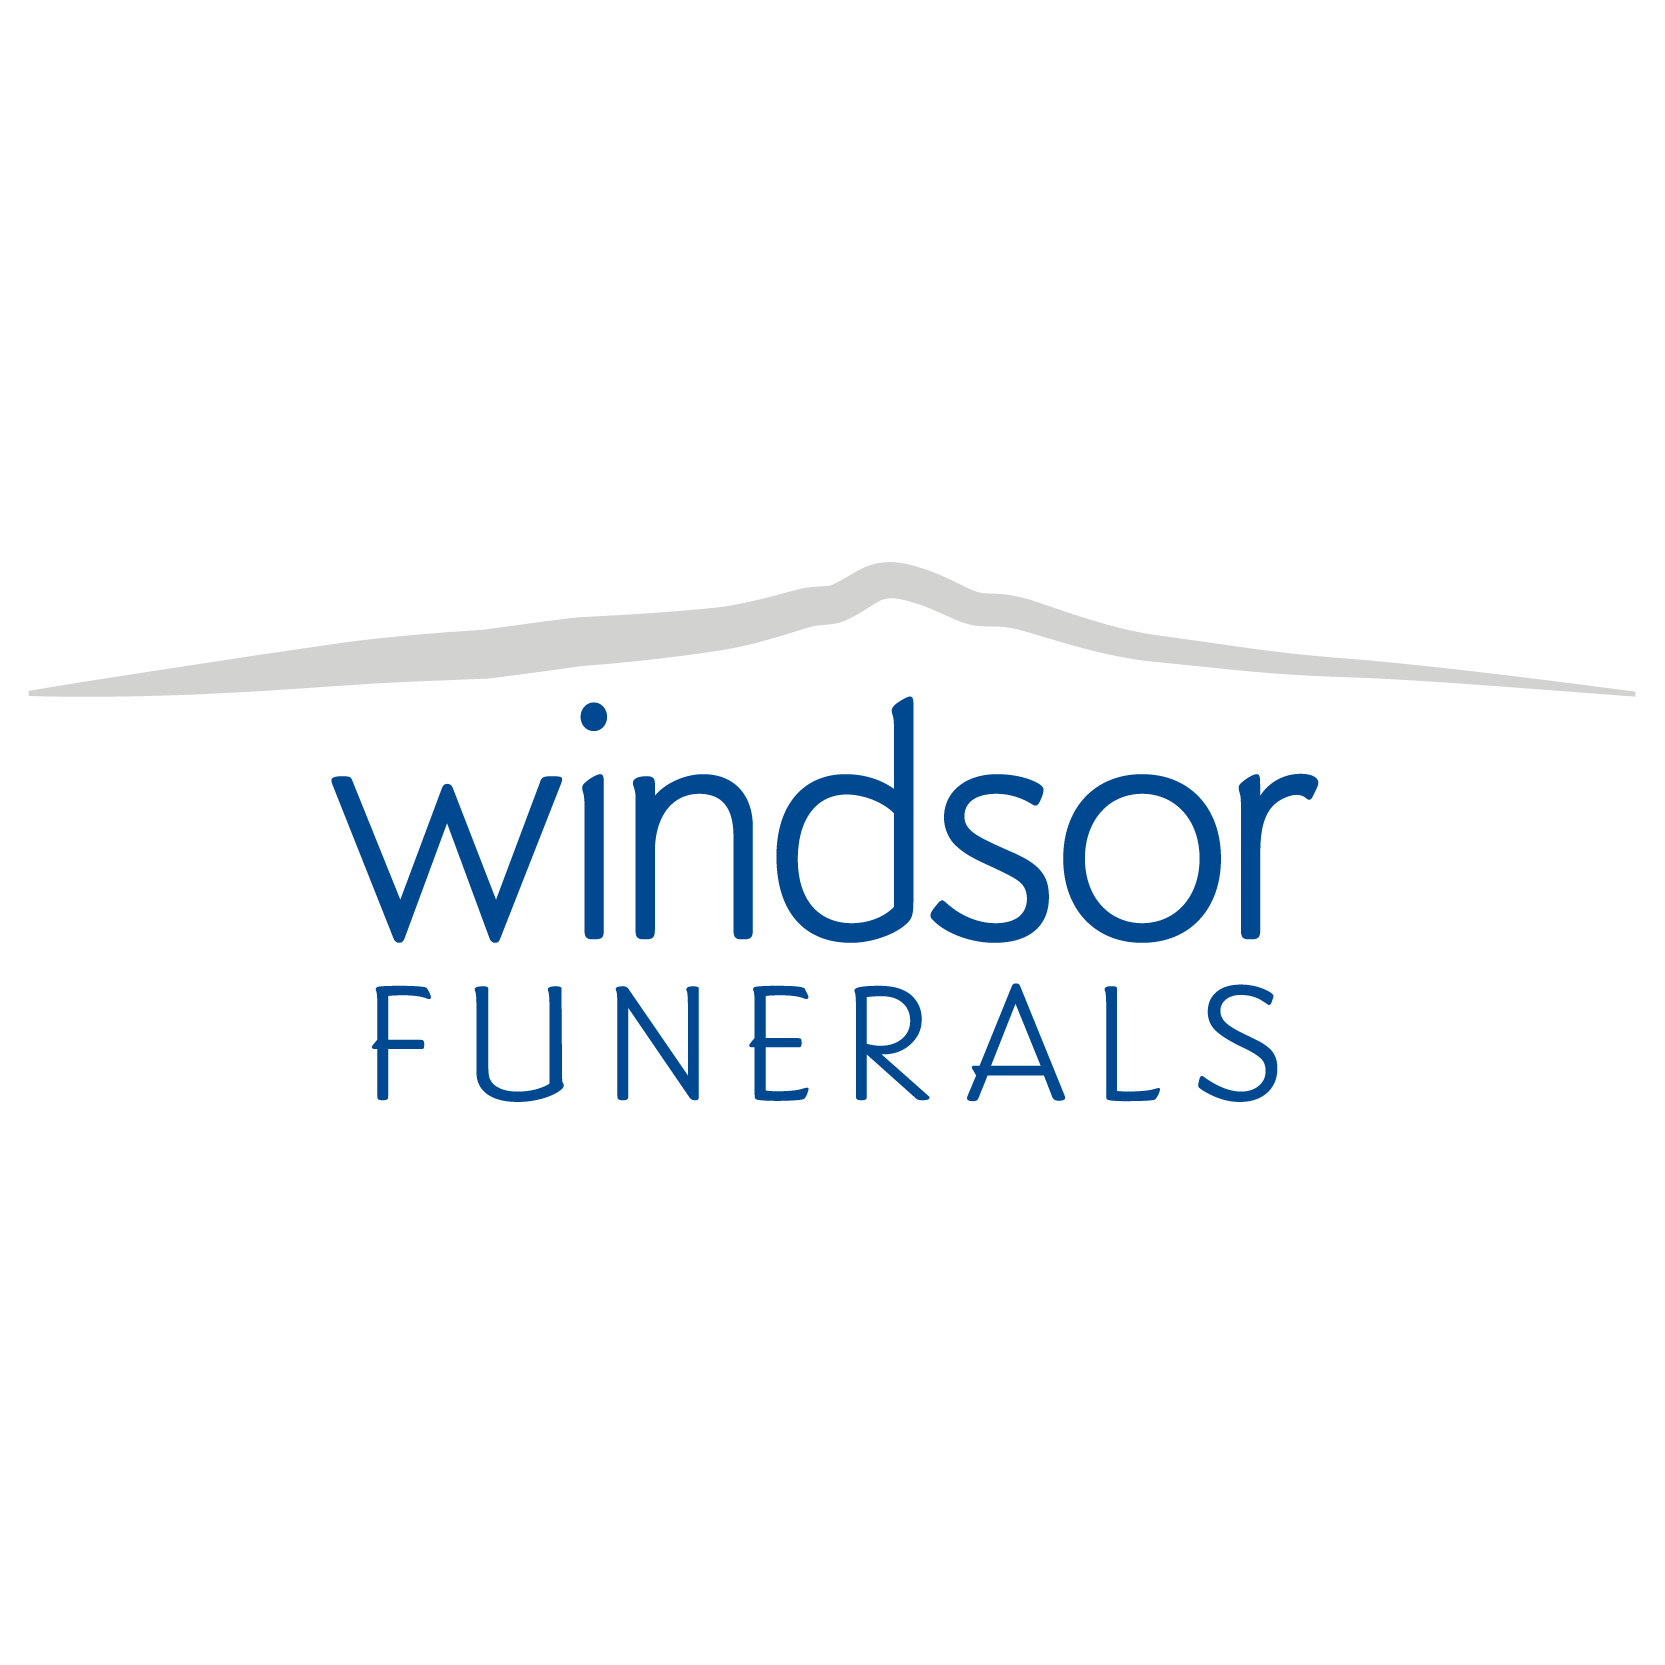 Windsor Funerals